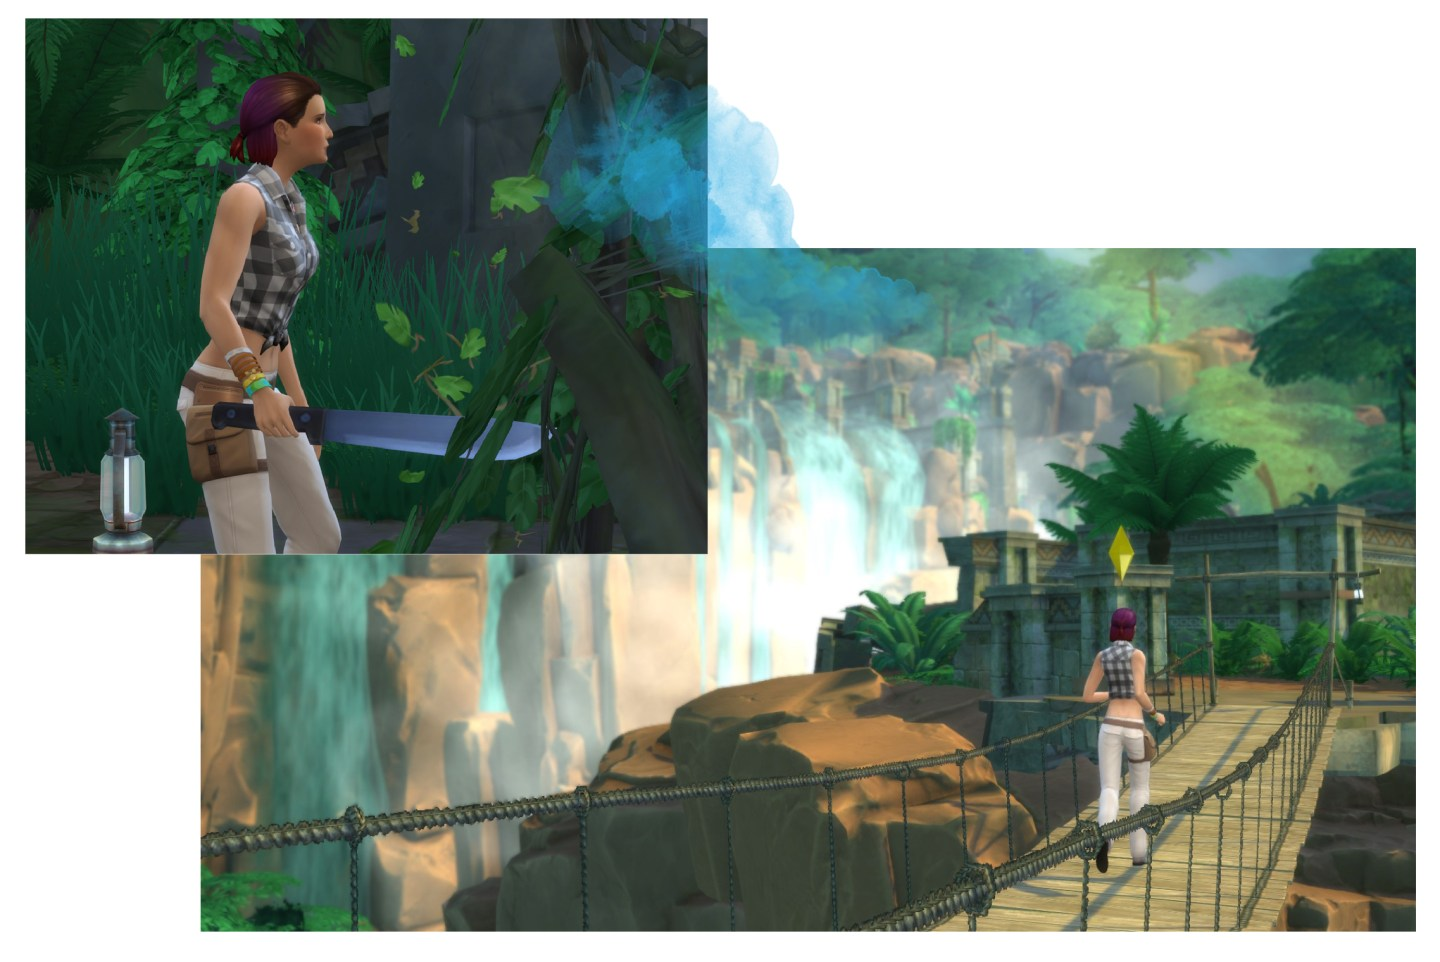 The Sims 4 Jungle Adventure.jpg